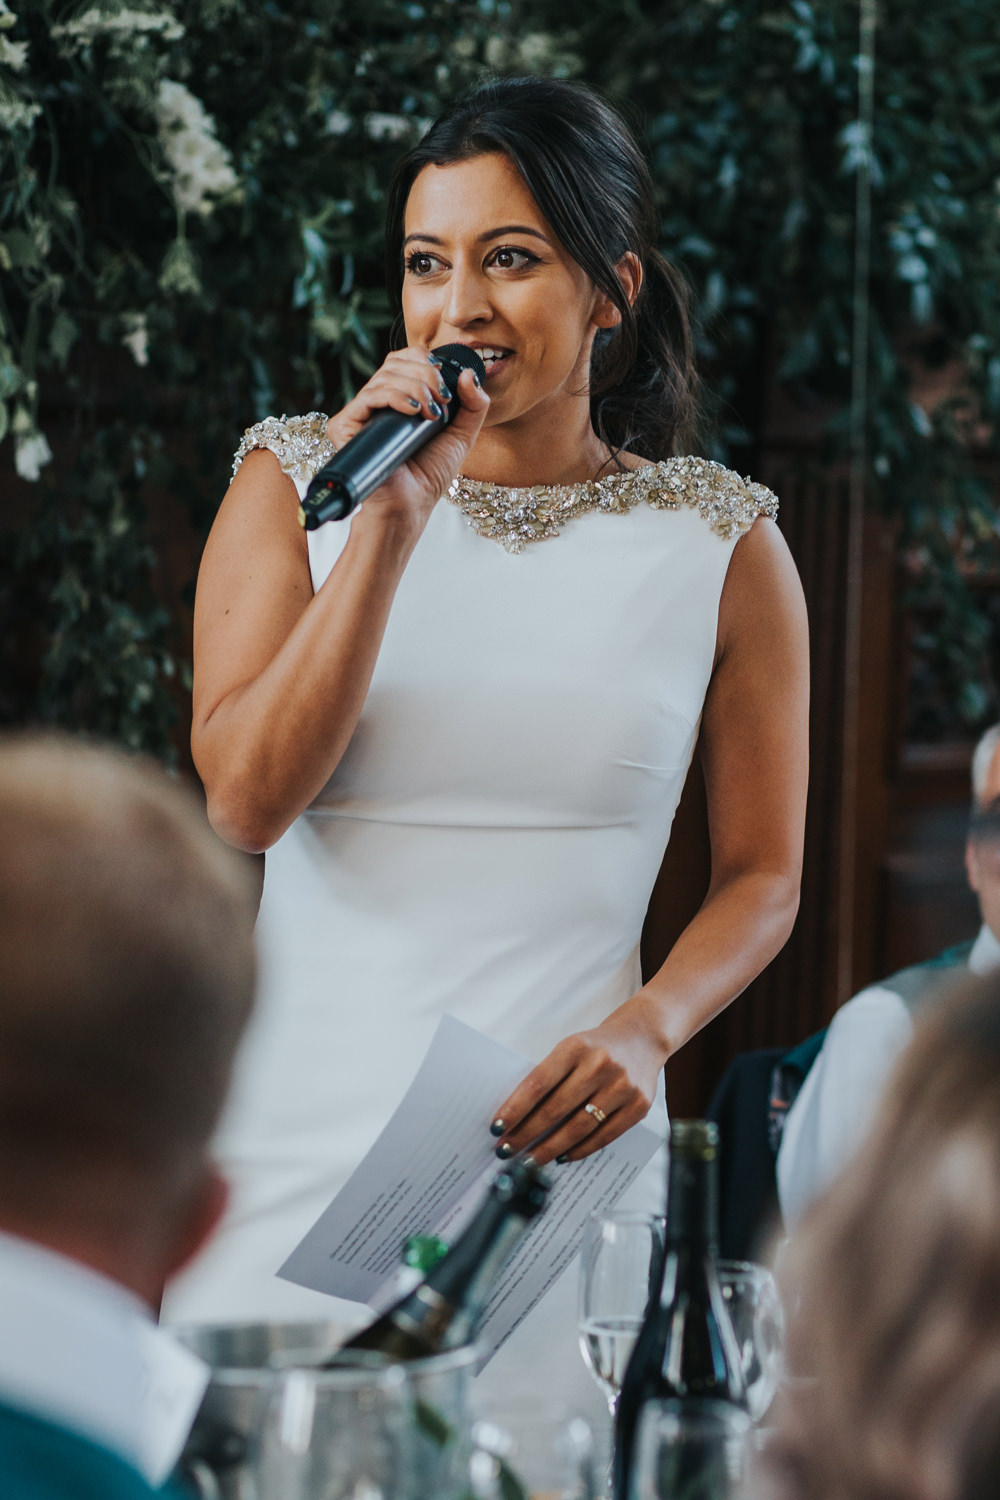 Pronovias Dress Gown Fit and Flare Embellished Sparkle Long Train Speech Albert Hall Manchester Wedding Katie Dervin Photography